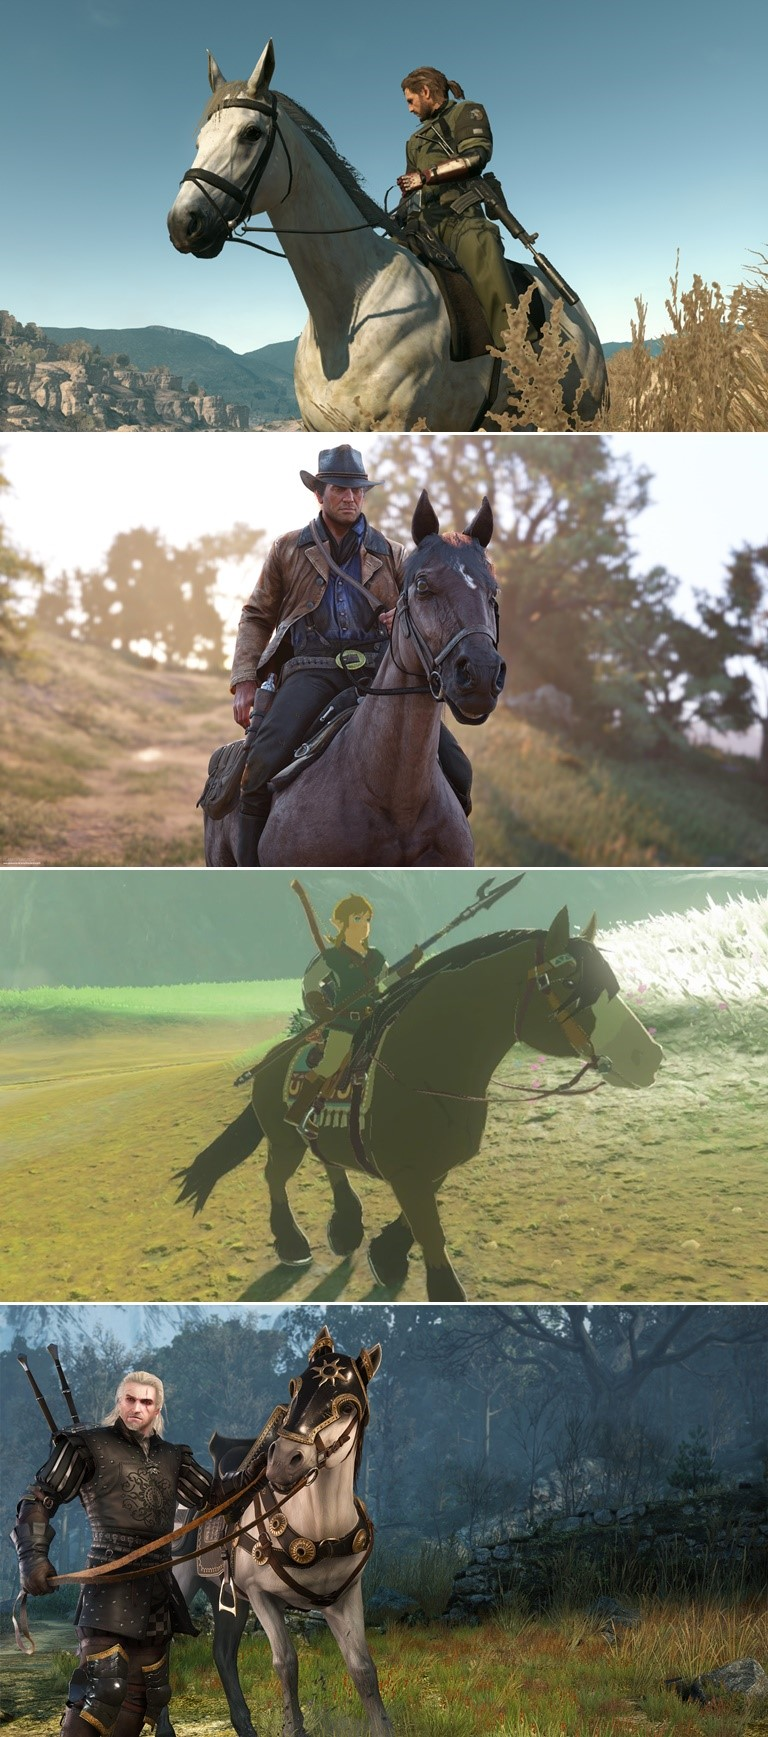 Metal Gear Solid V The Phantom Pain'The Witcher The Legend of Zelda Red Dead Redemption 2